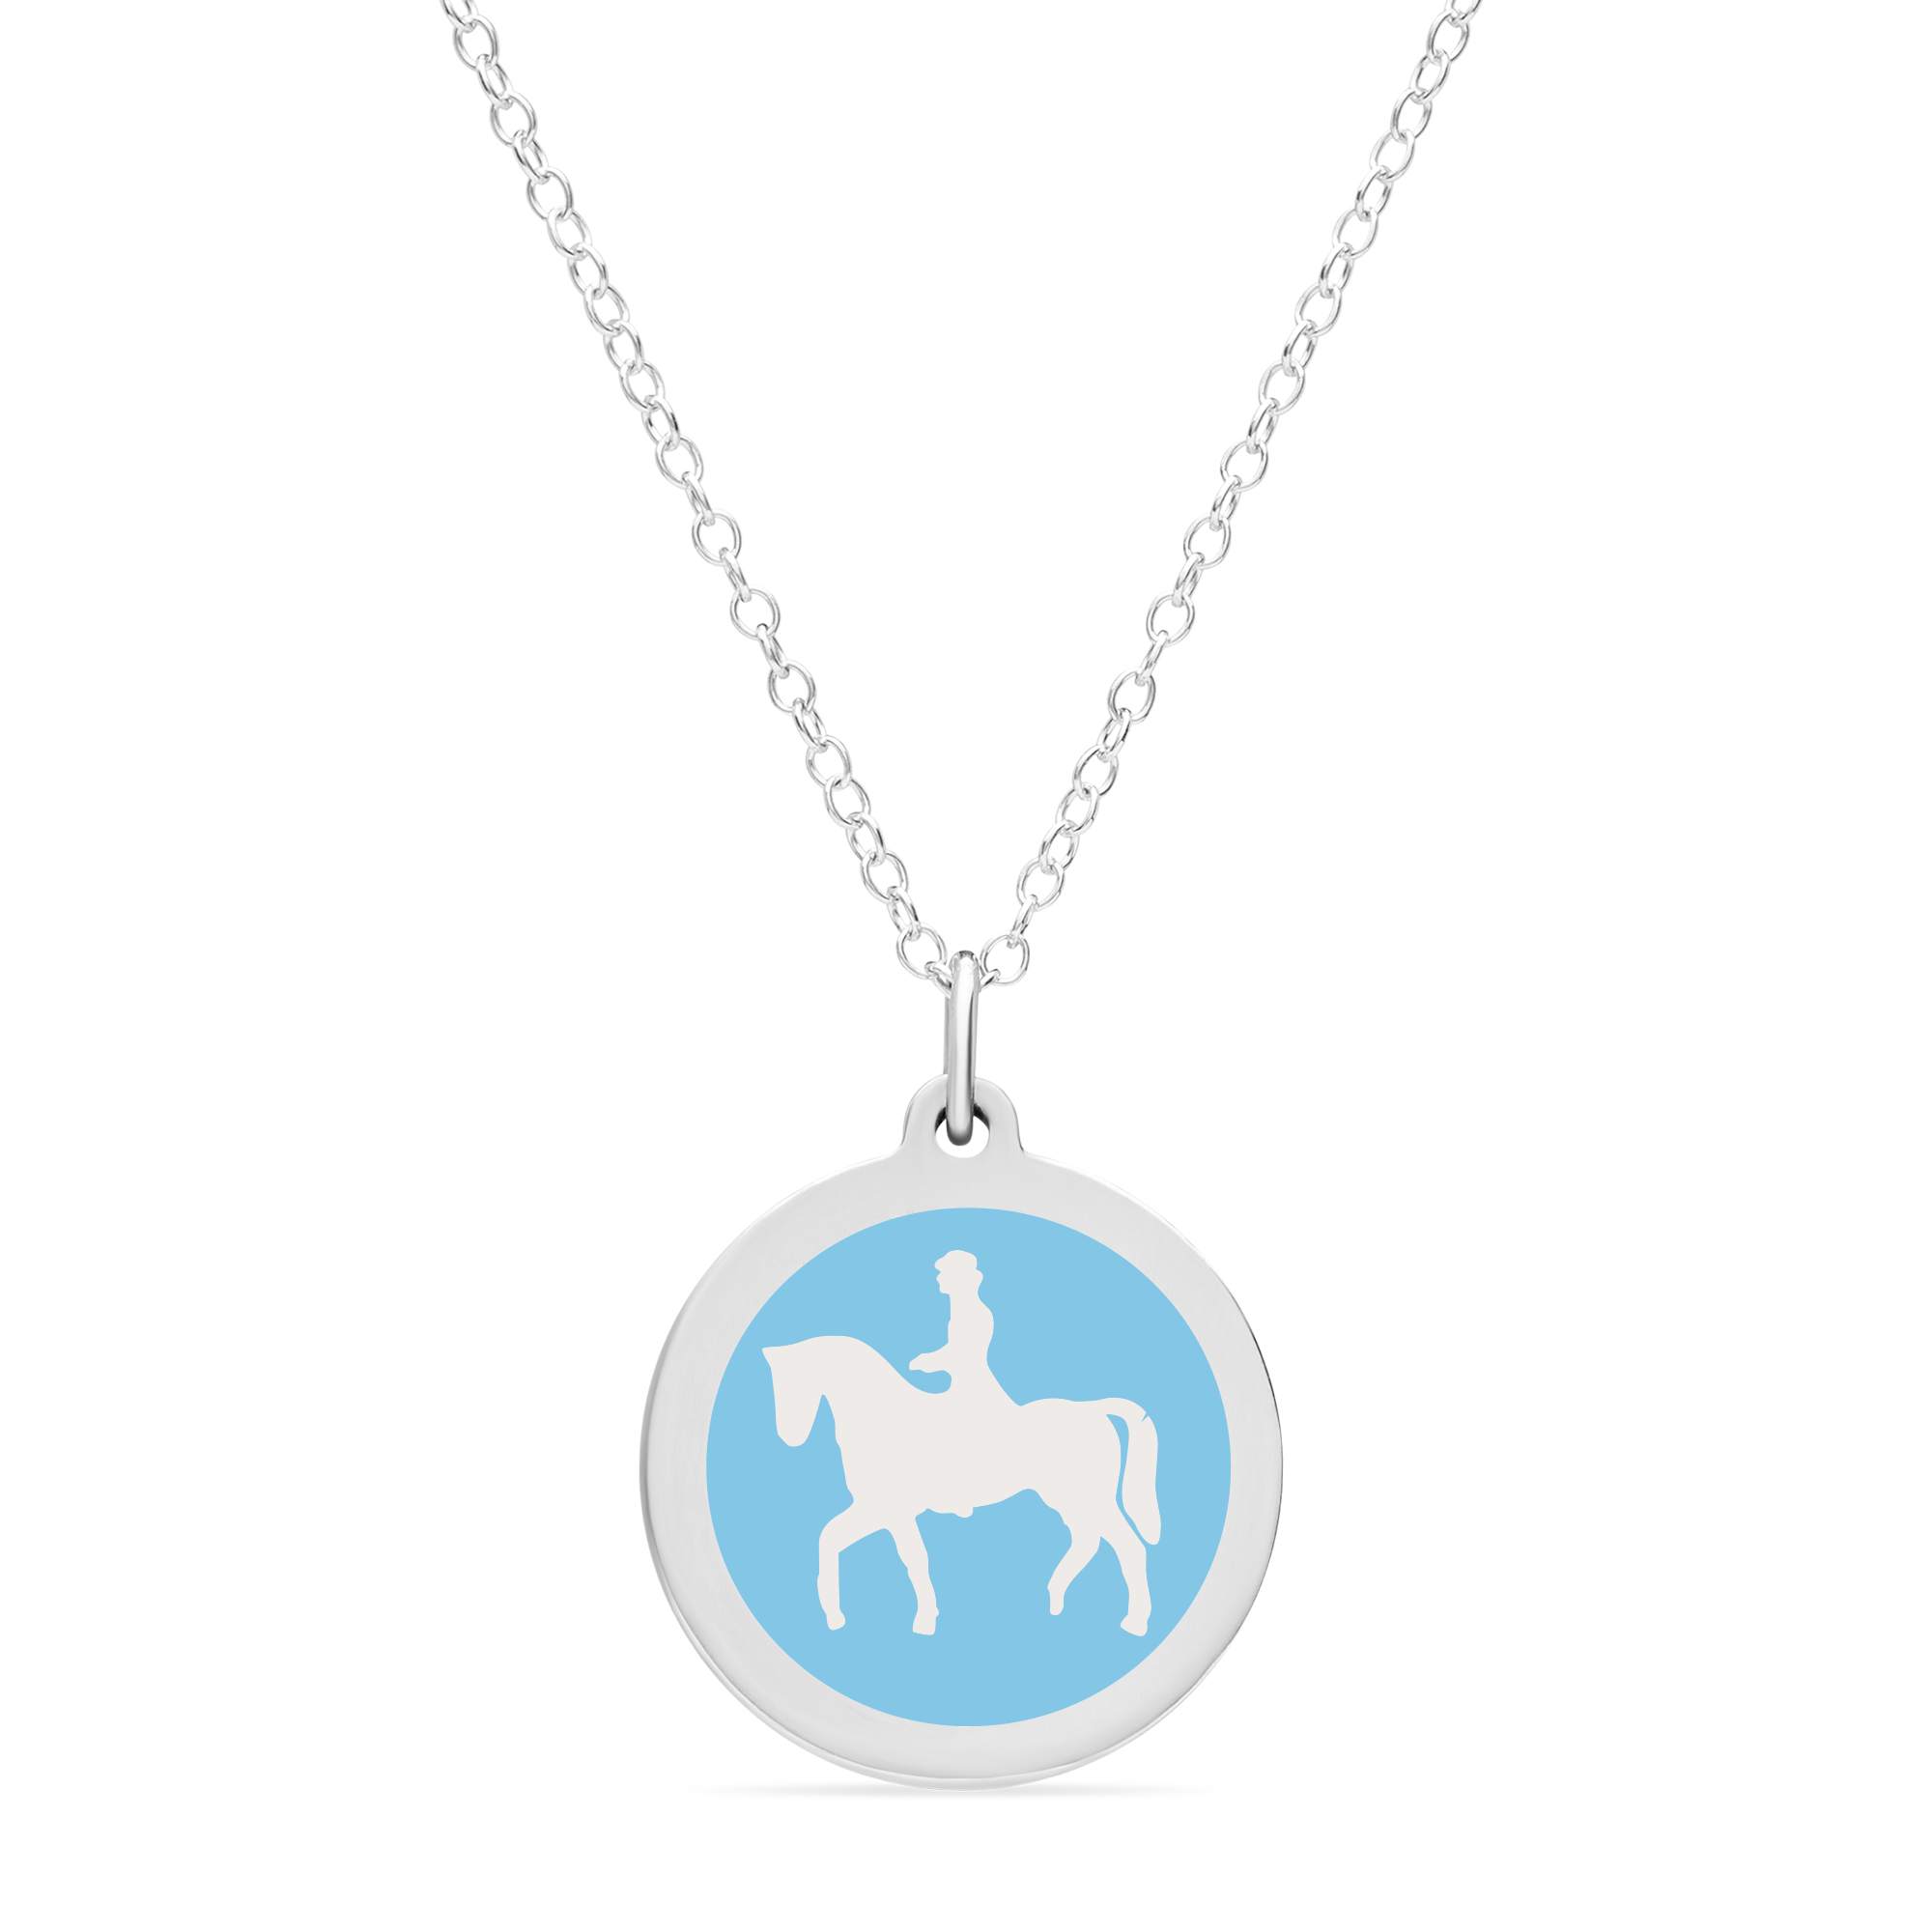 LARGE DRESSAGE CHARM sterling silver with rhodium plate